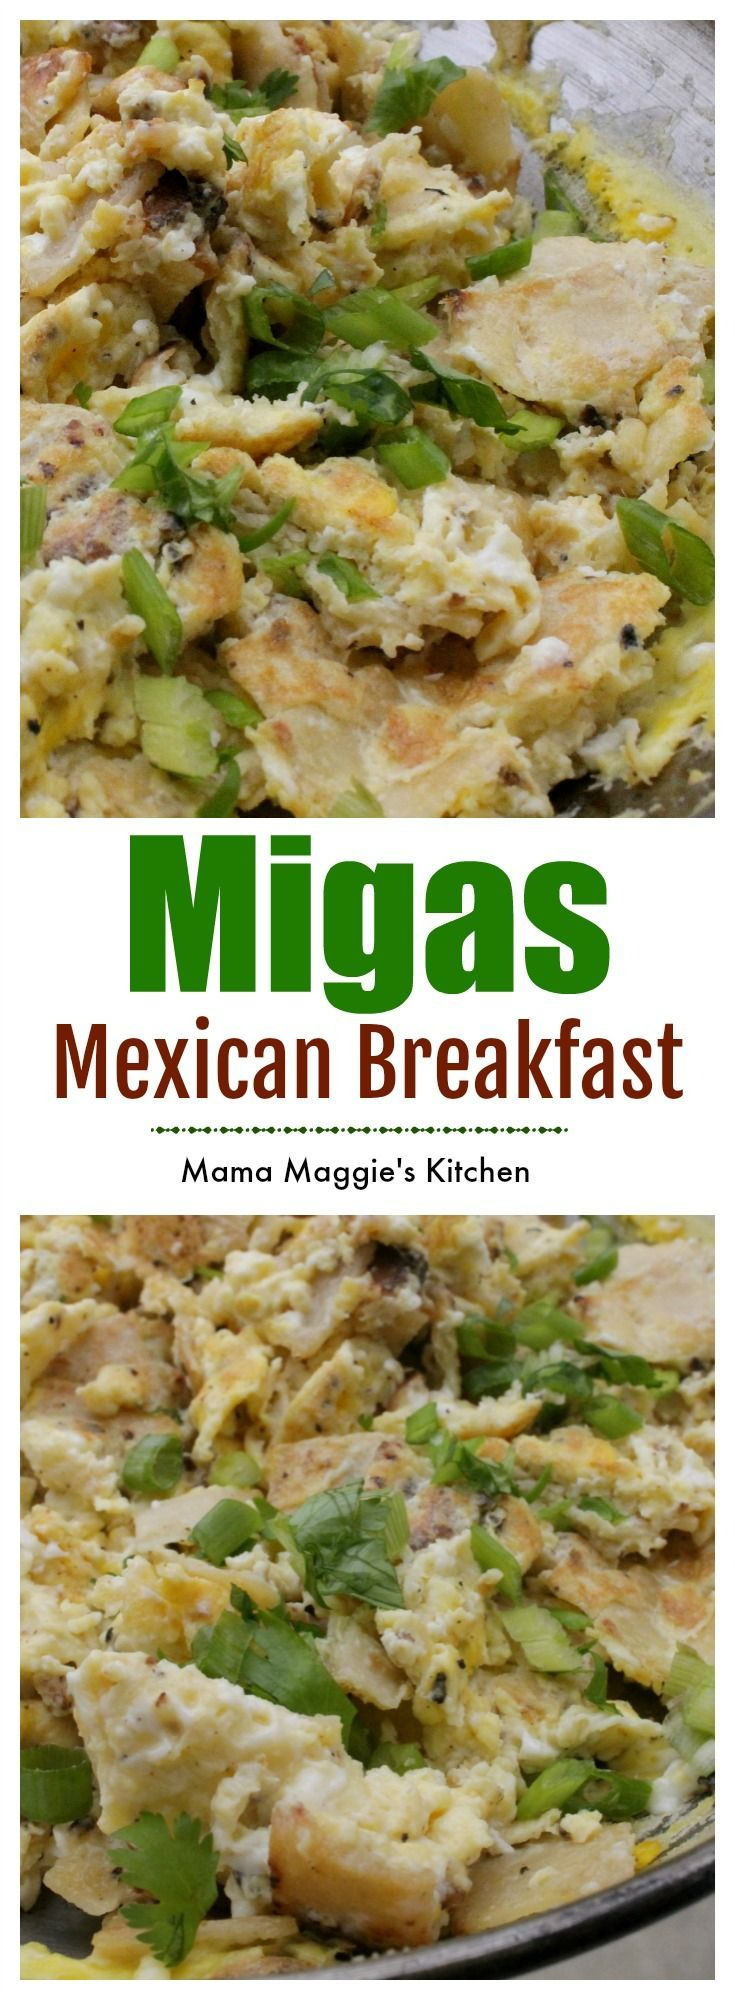 These Mexican Breakfast Migas are great for a quick and delicious Sunday brunch. by Mama Maggie's Kitchen